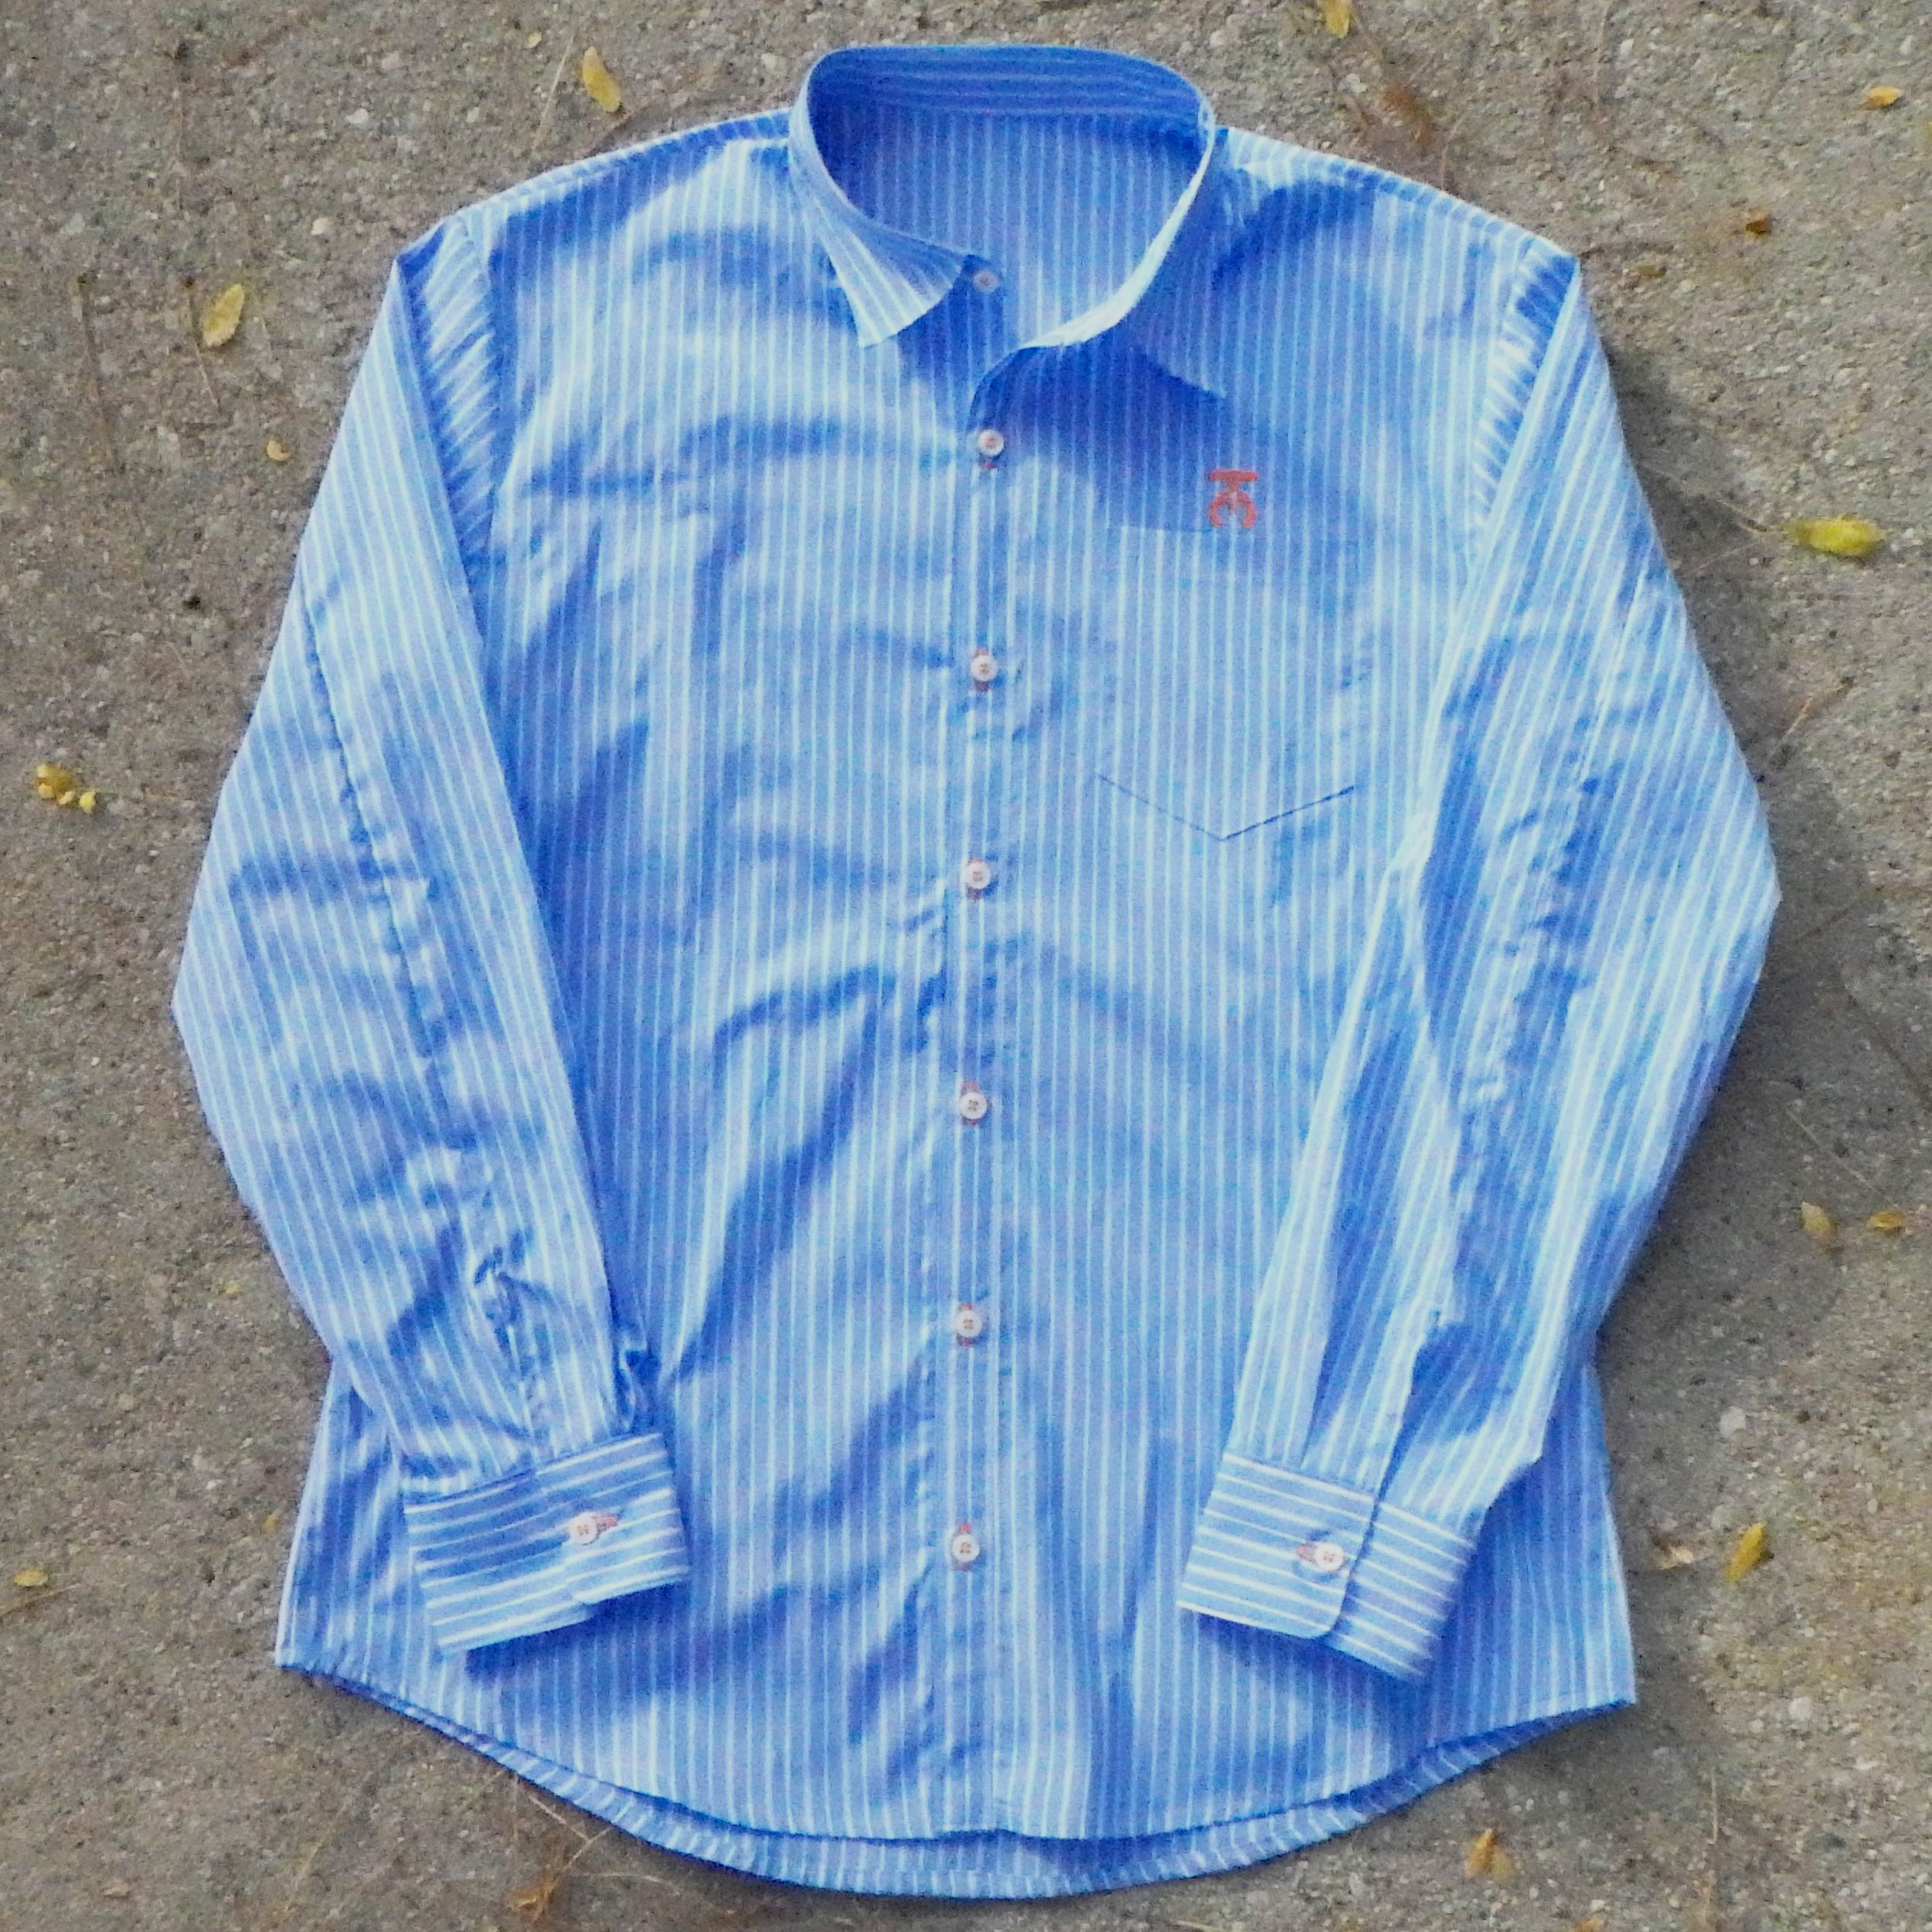 Tock Custom Dress Shirt.JPG